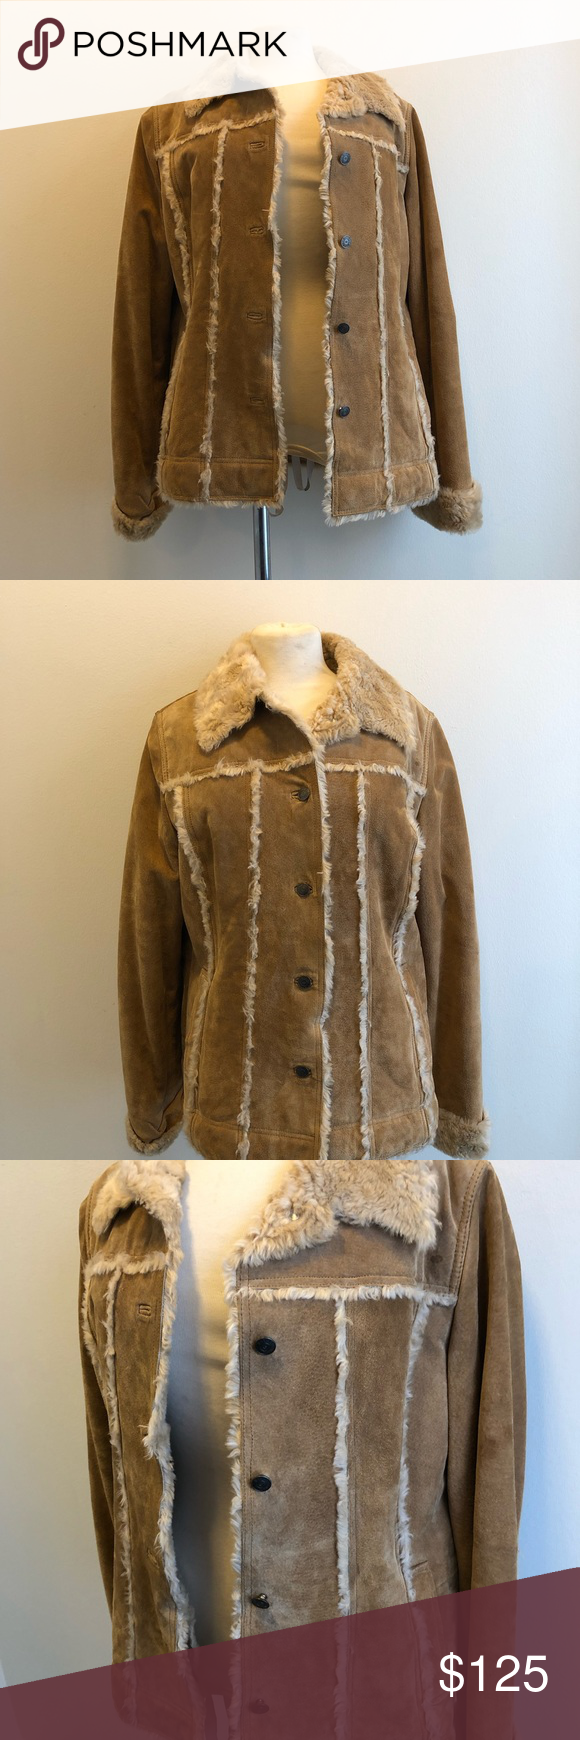 Vintage Wilson's Leather Suede Shearling Jacket